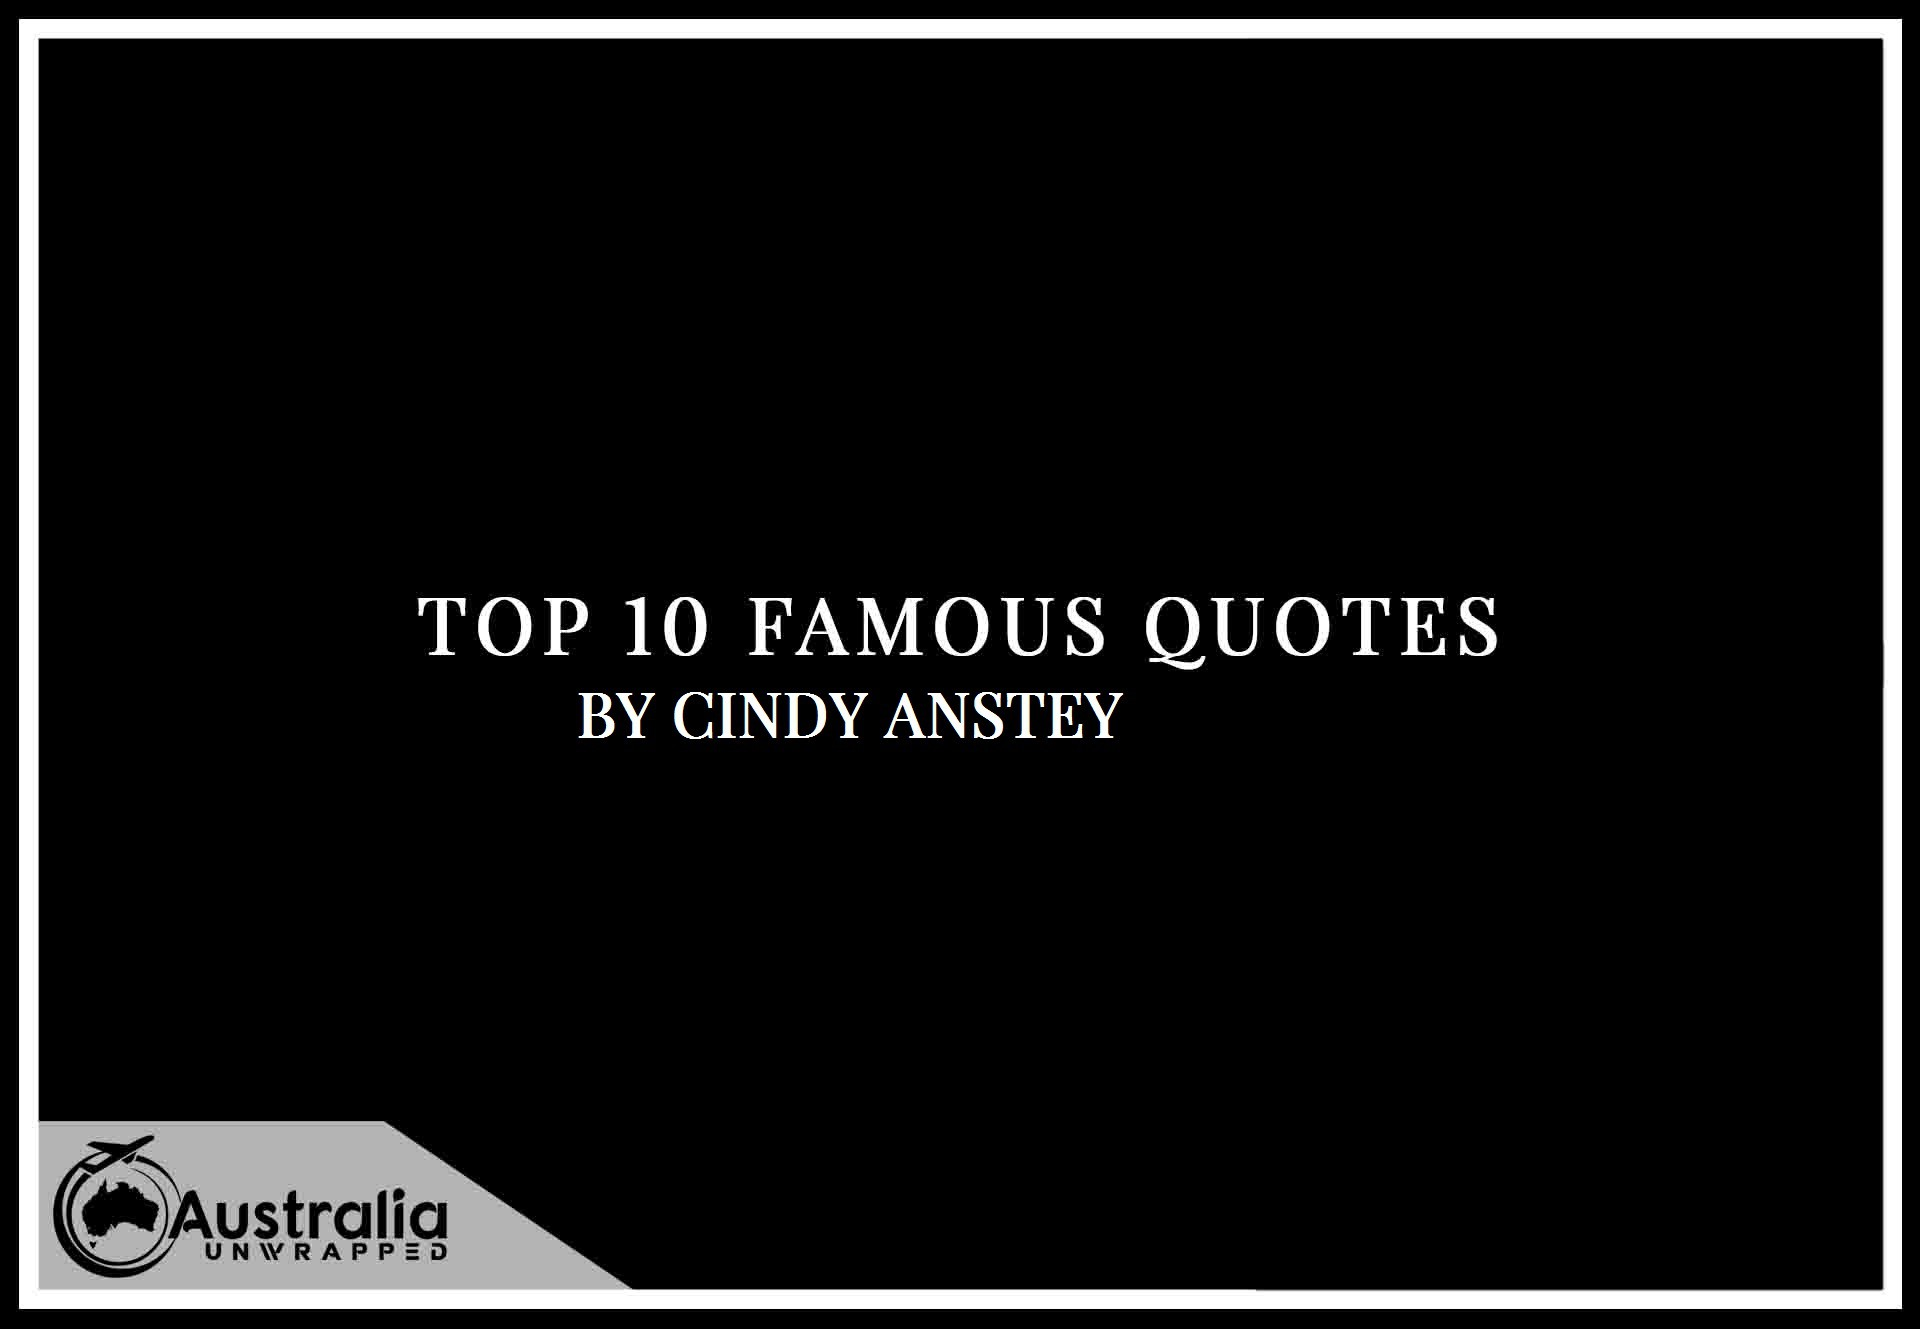 Cindy Anstey's Top 10 Popular and Famous Quotes